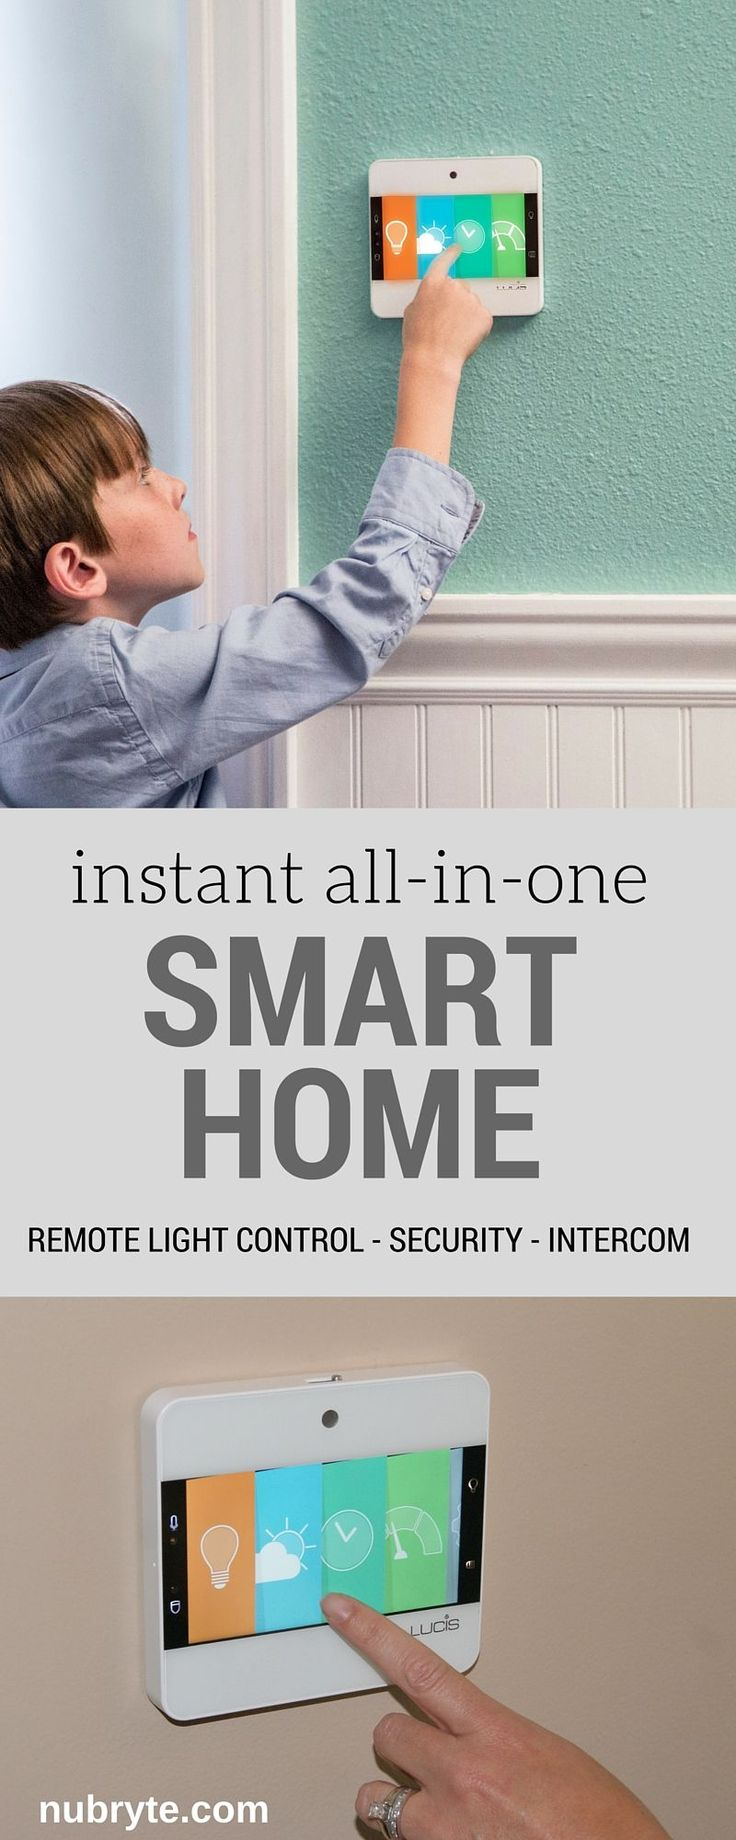 5819 best smart home automation systems images on pinterest